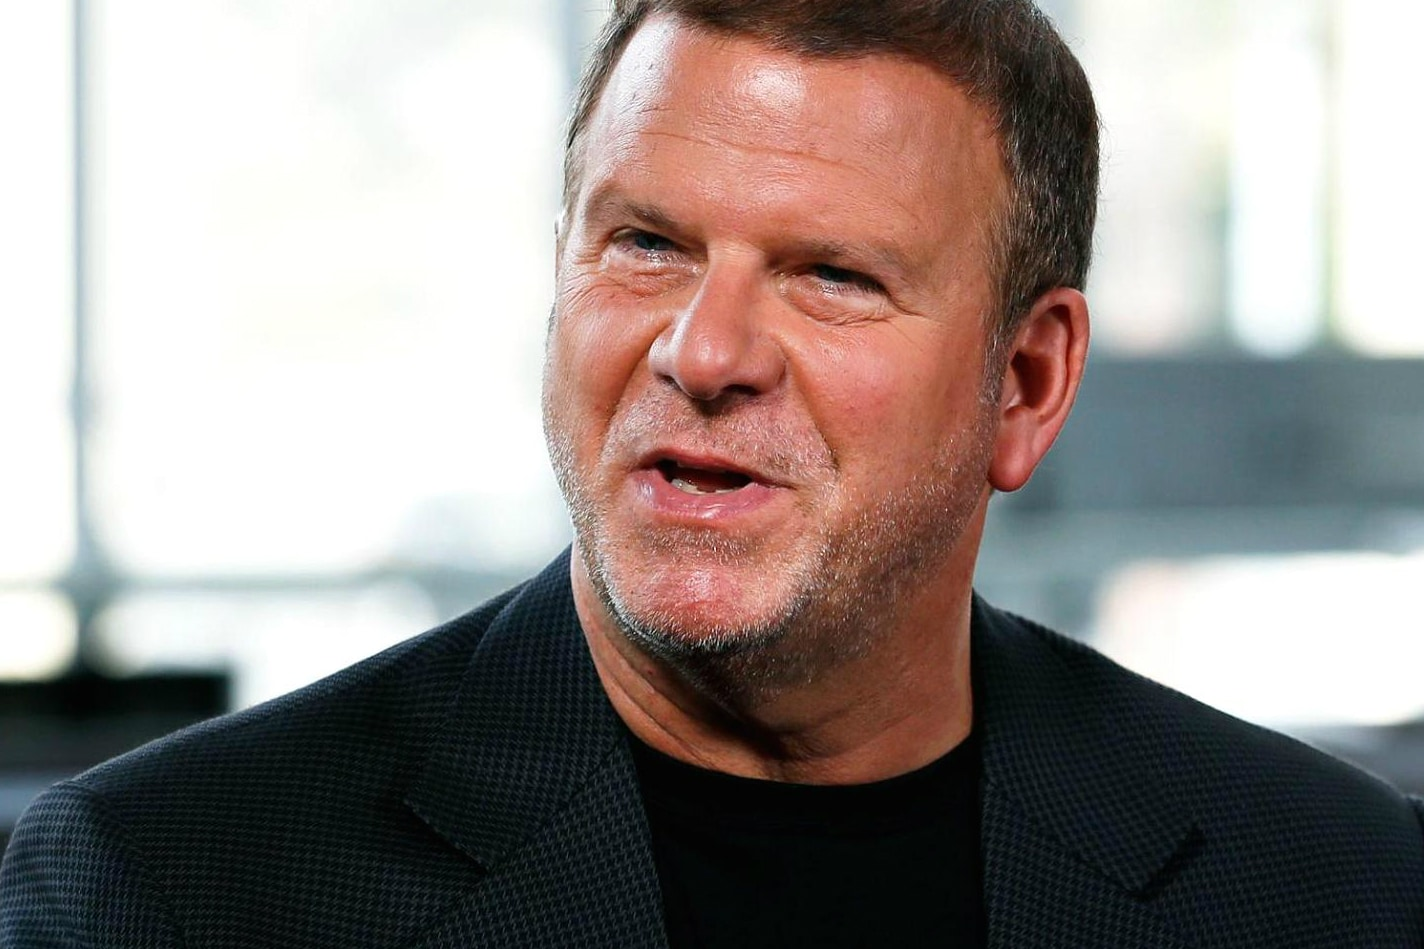 Restaurant, casino owner Tilman Fertitta to buy Houston Rockets from Leslie Alexander